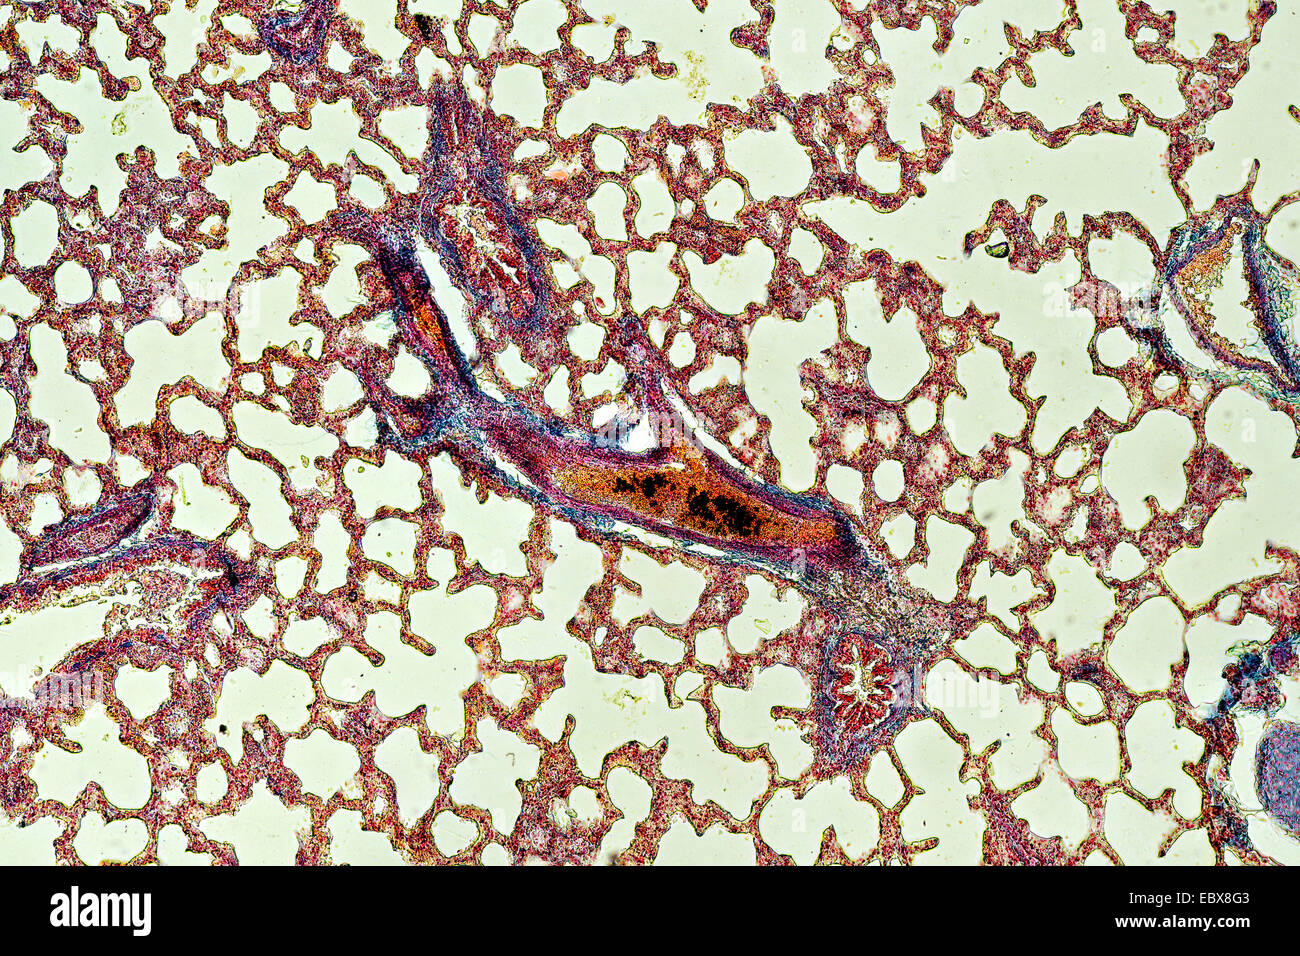 Cross section of the lung with bronchioles, alveoli and blood vessels visible - Stock Image